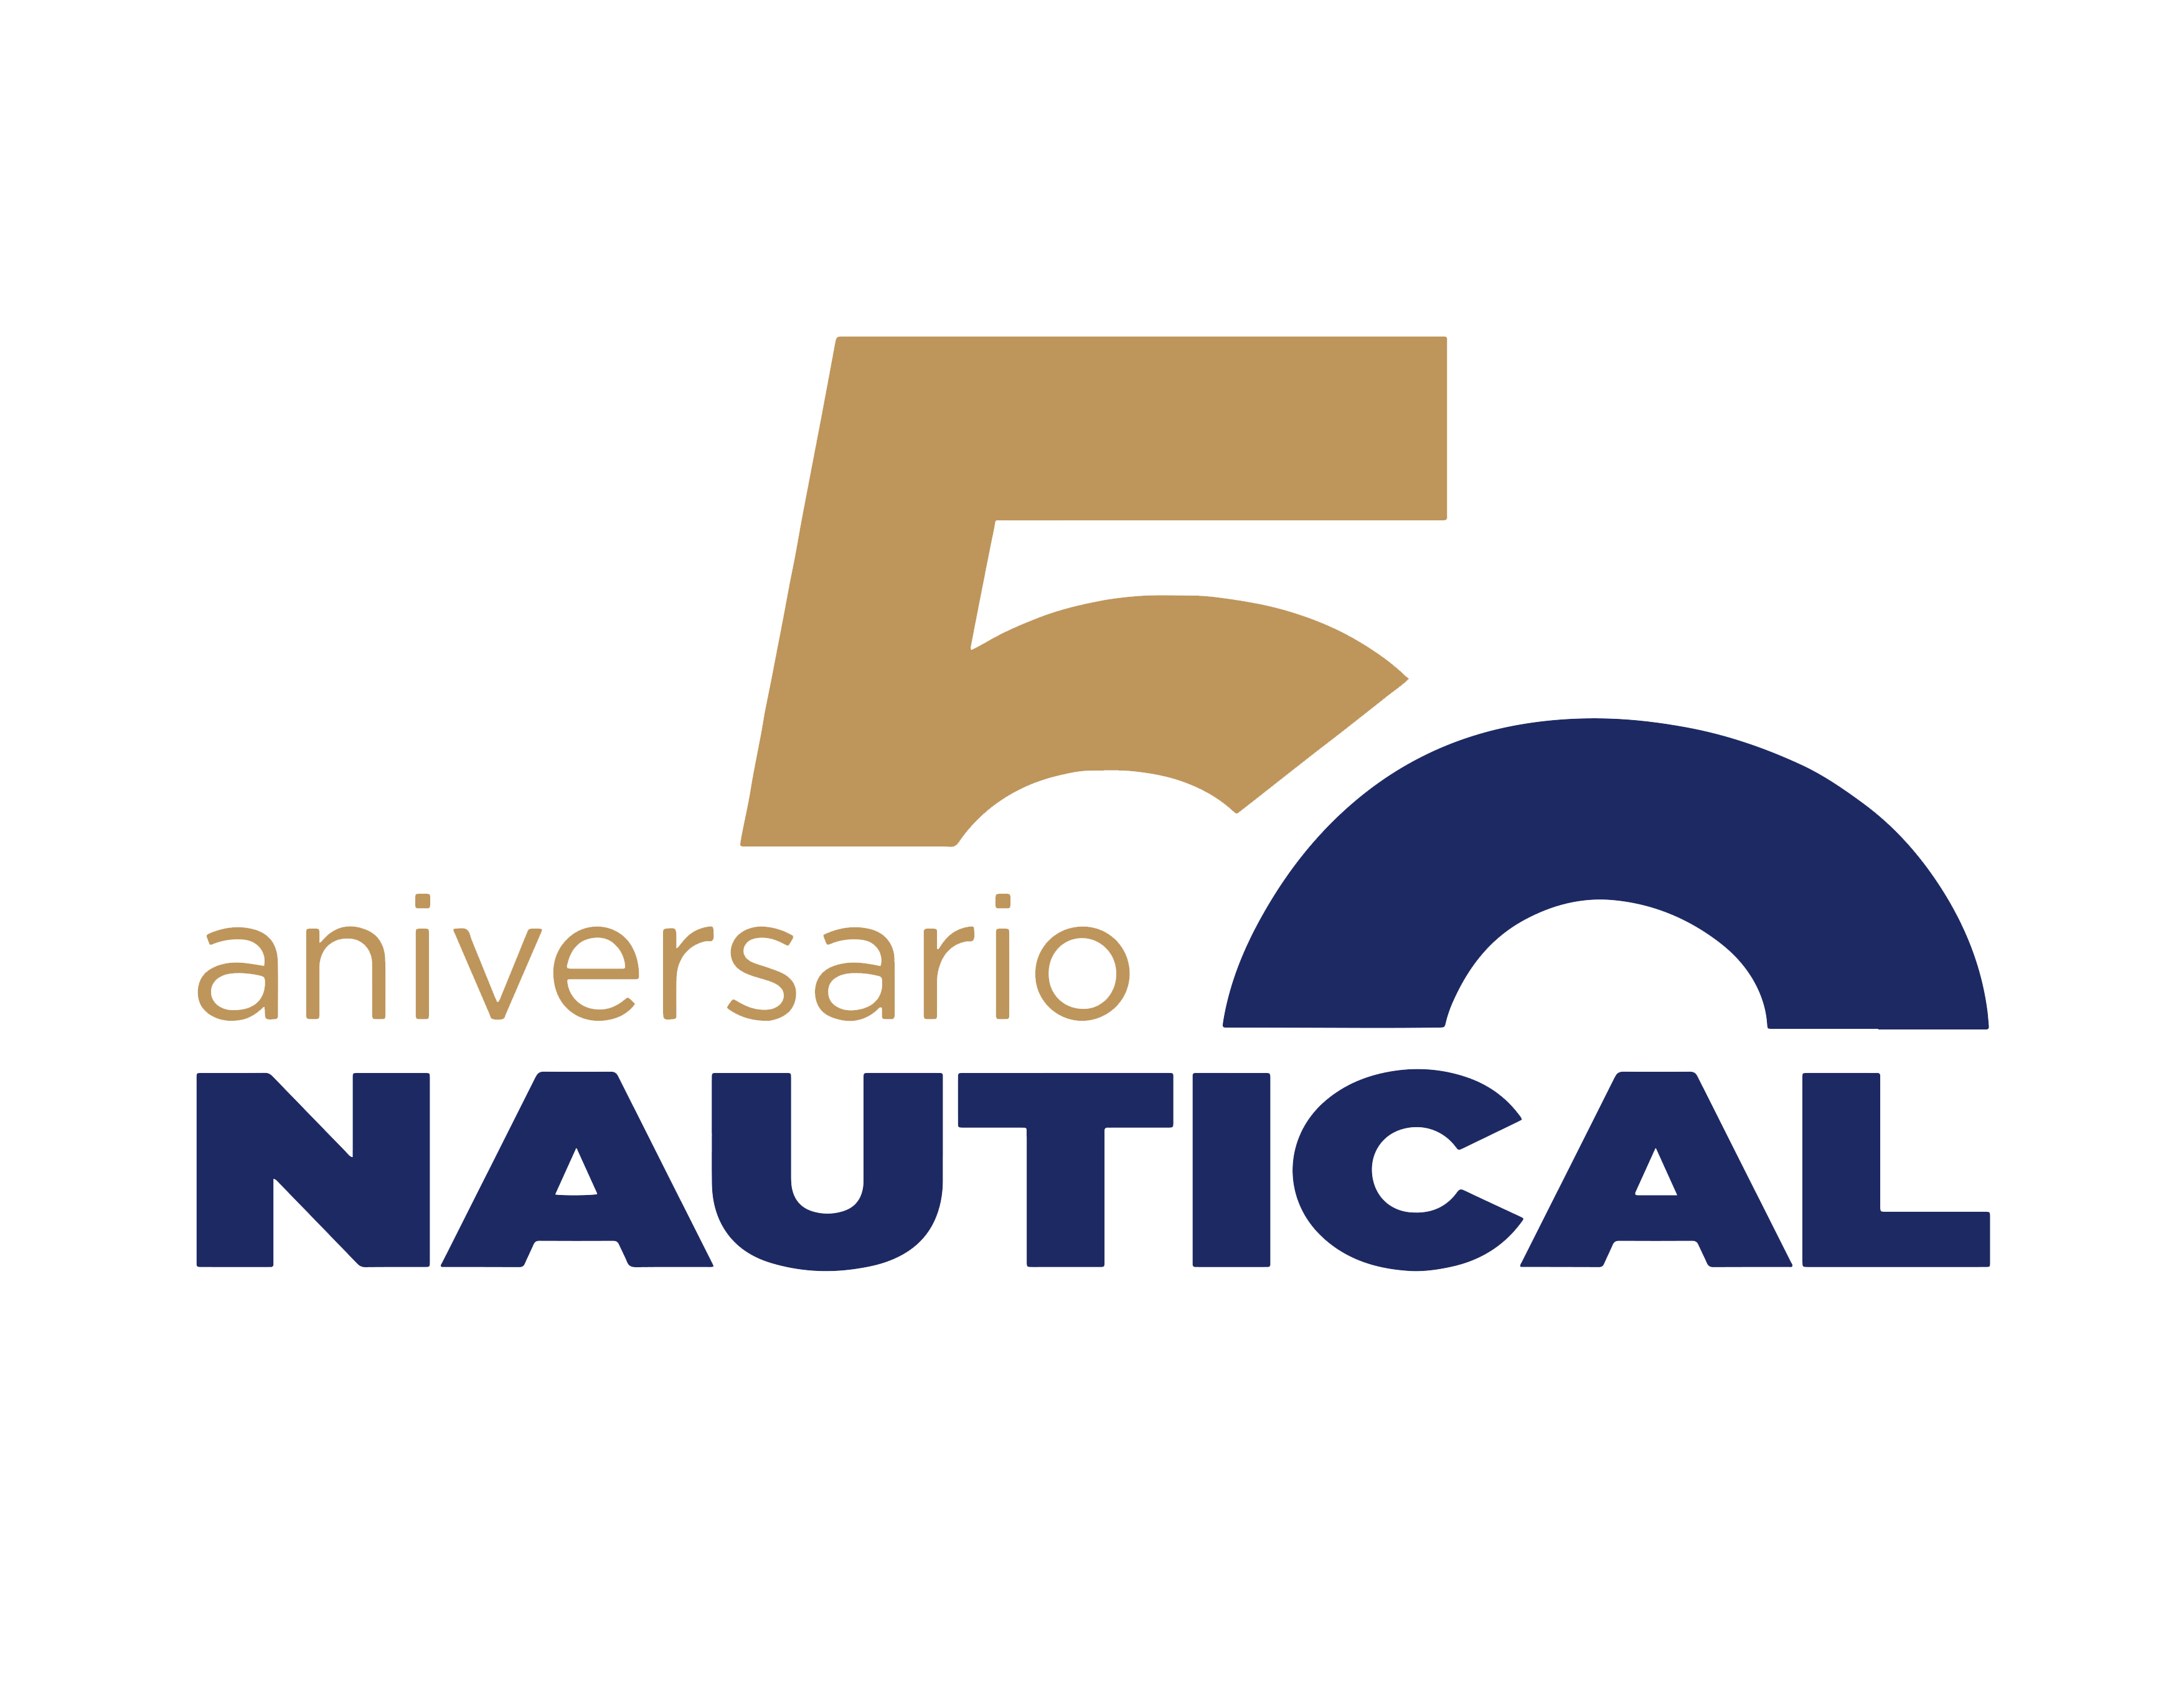 NAUTICAL LUIS ARBULU S.L.U.